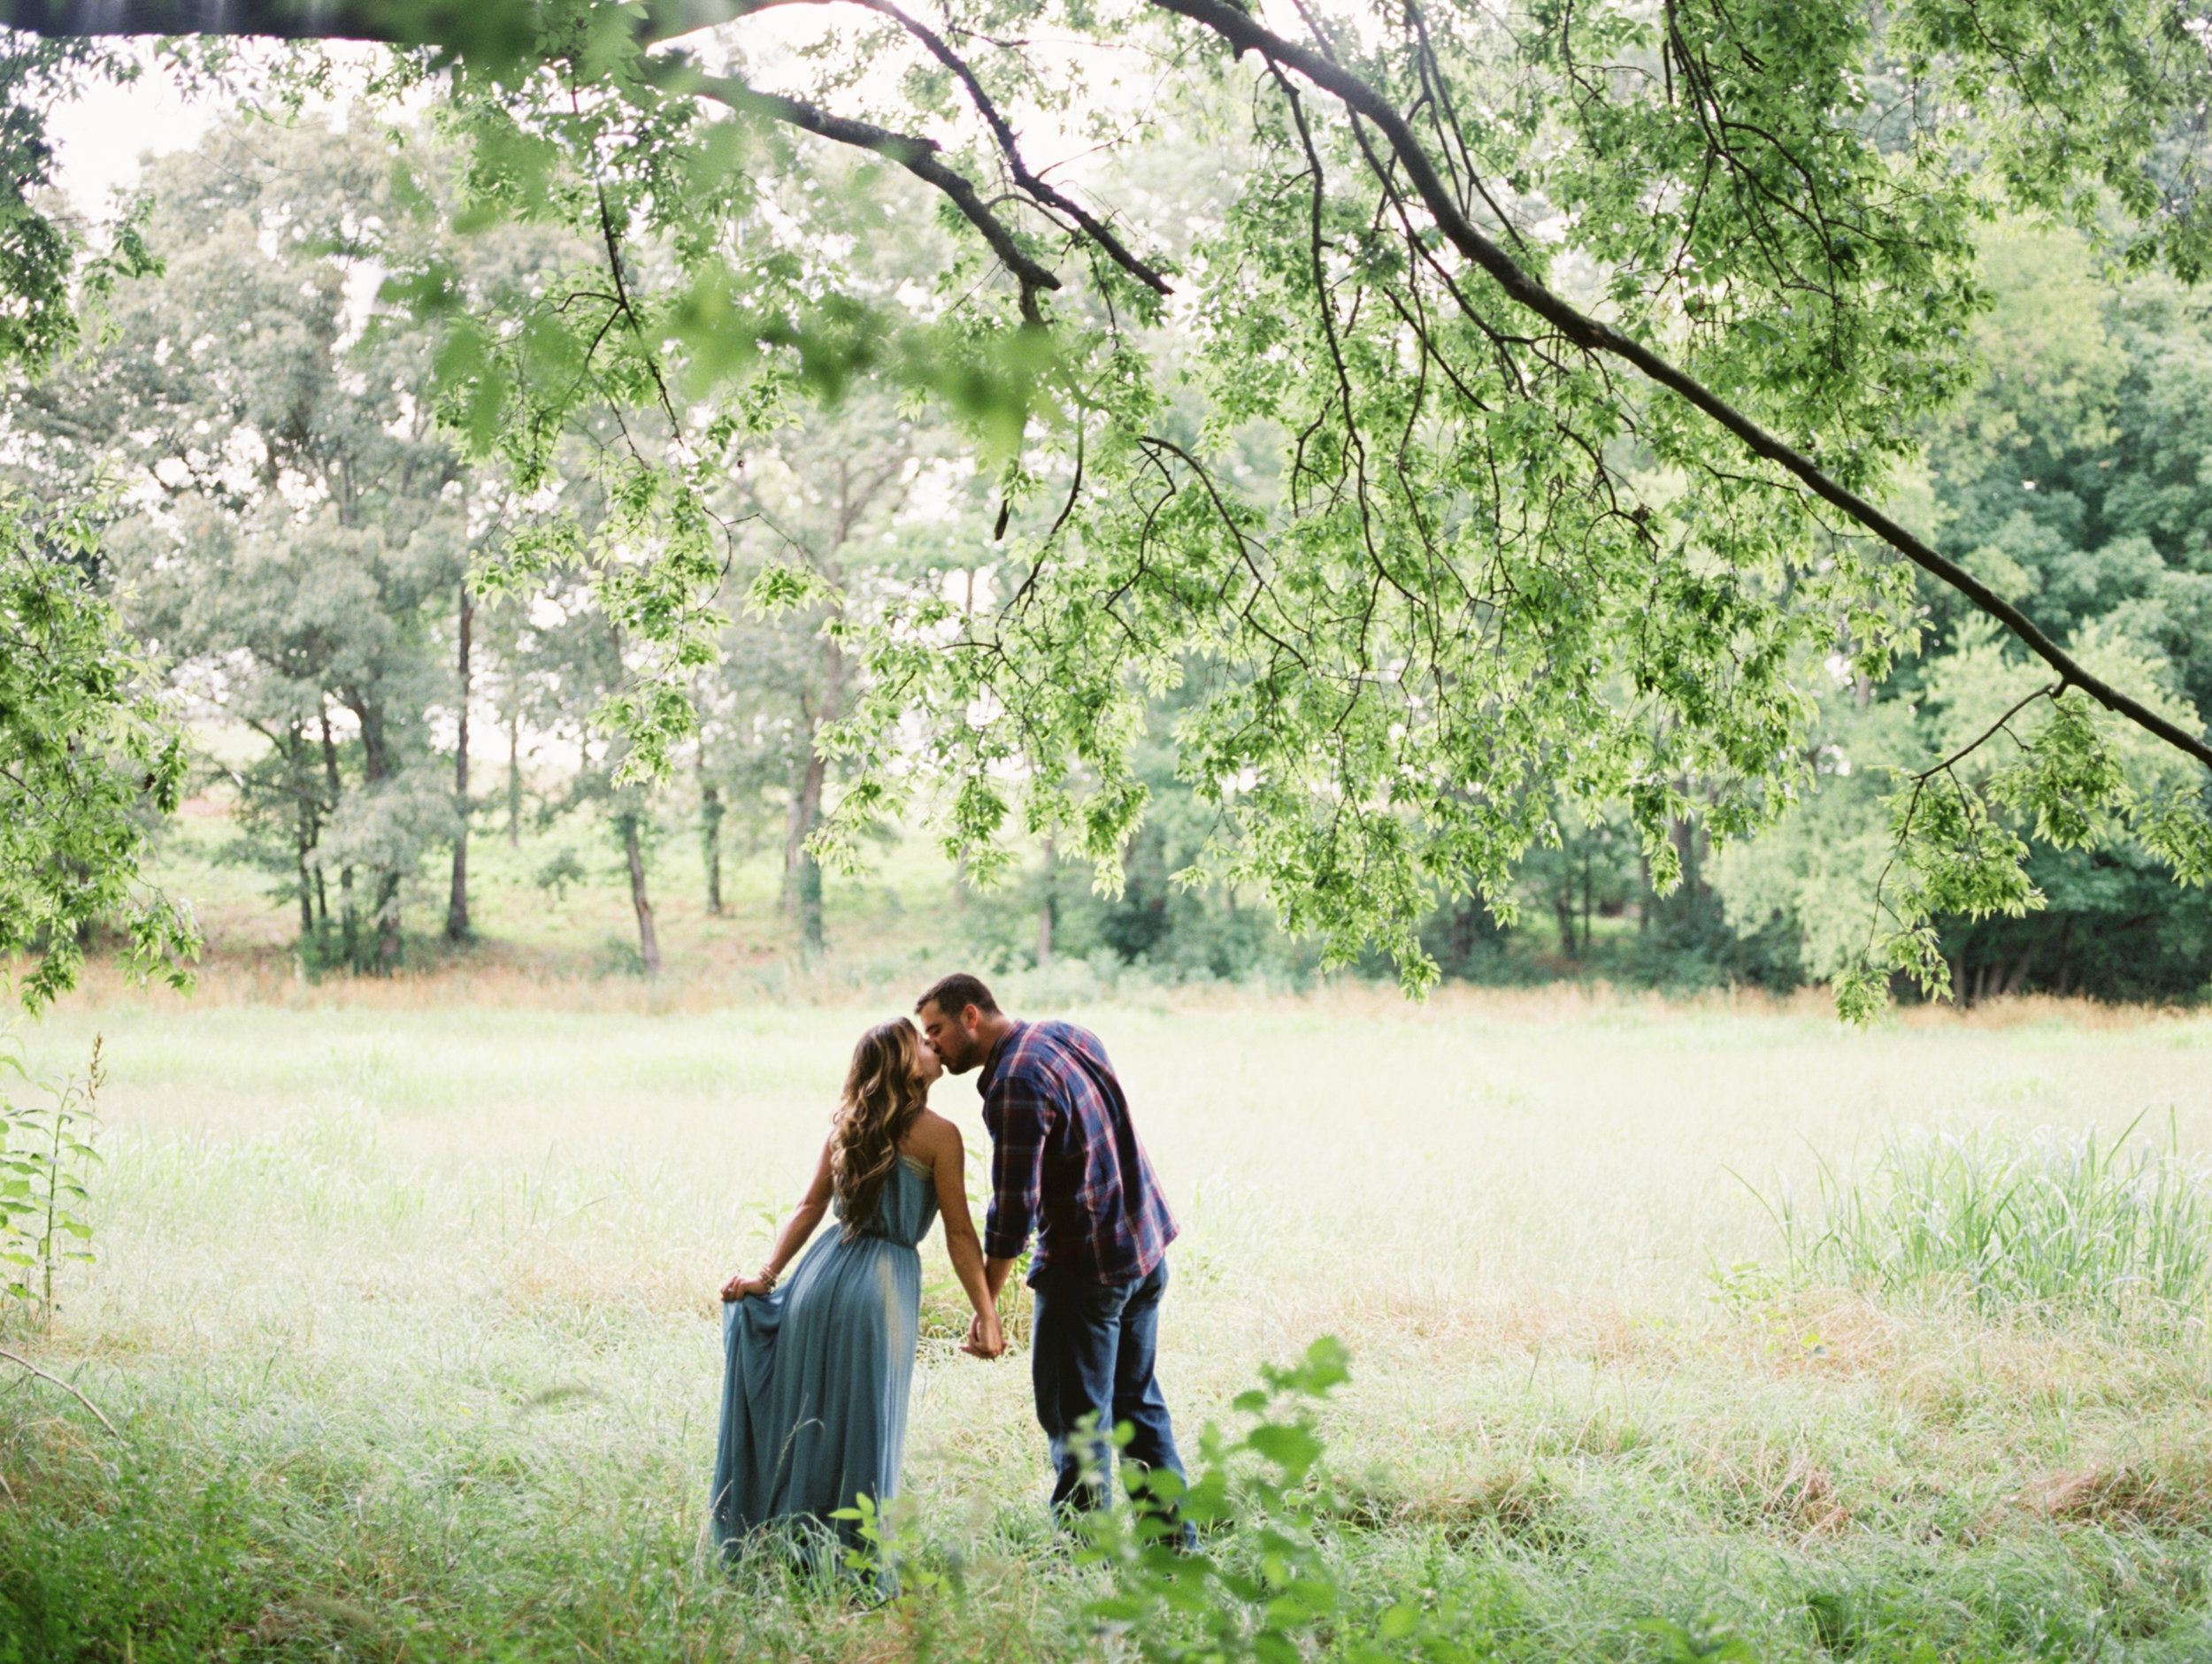 Brittany_Wes_Farm_Engagement_Abigail_Malone_Photography-122.jpg